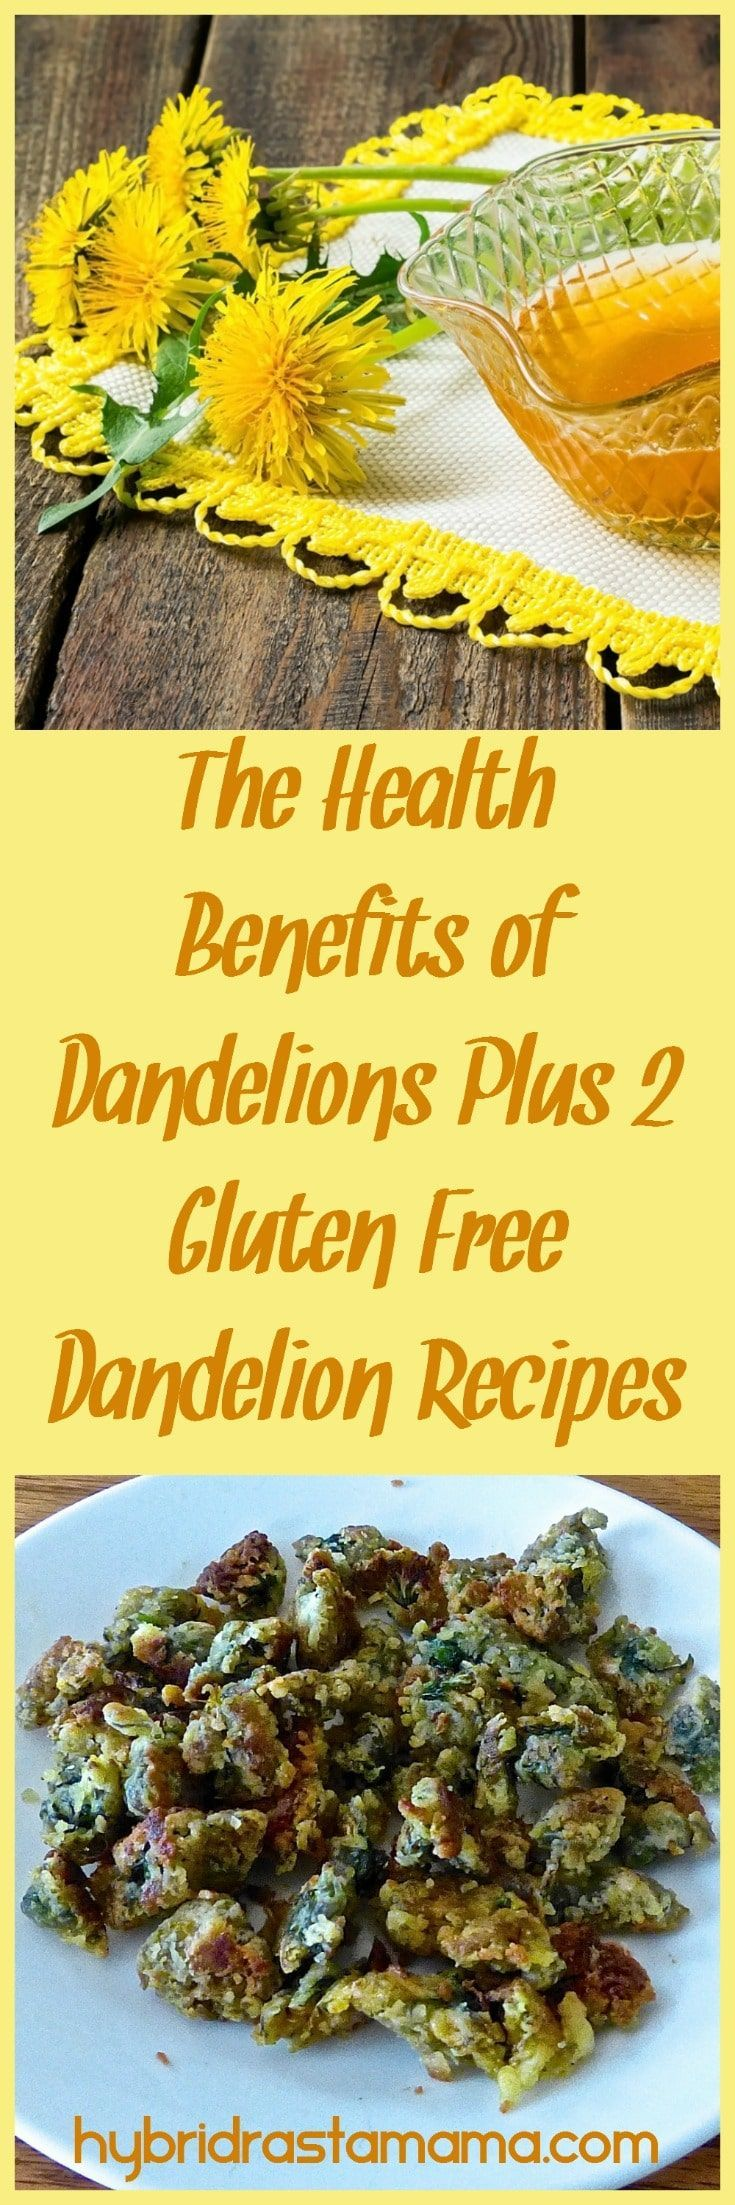 Fried Dandelion Flowers Candied Dandelion Flowers Gluten Free Recipes Recipe Gluten Free Recipes Side Dishes Dandelion Benefits Dandelion Recipes